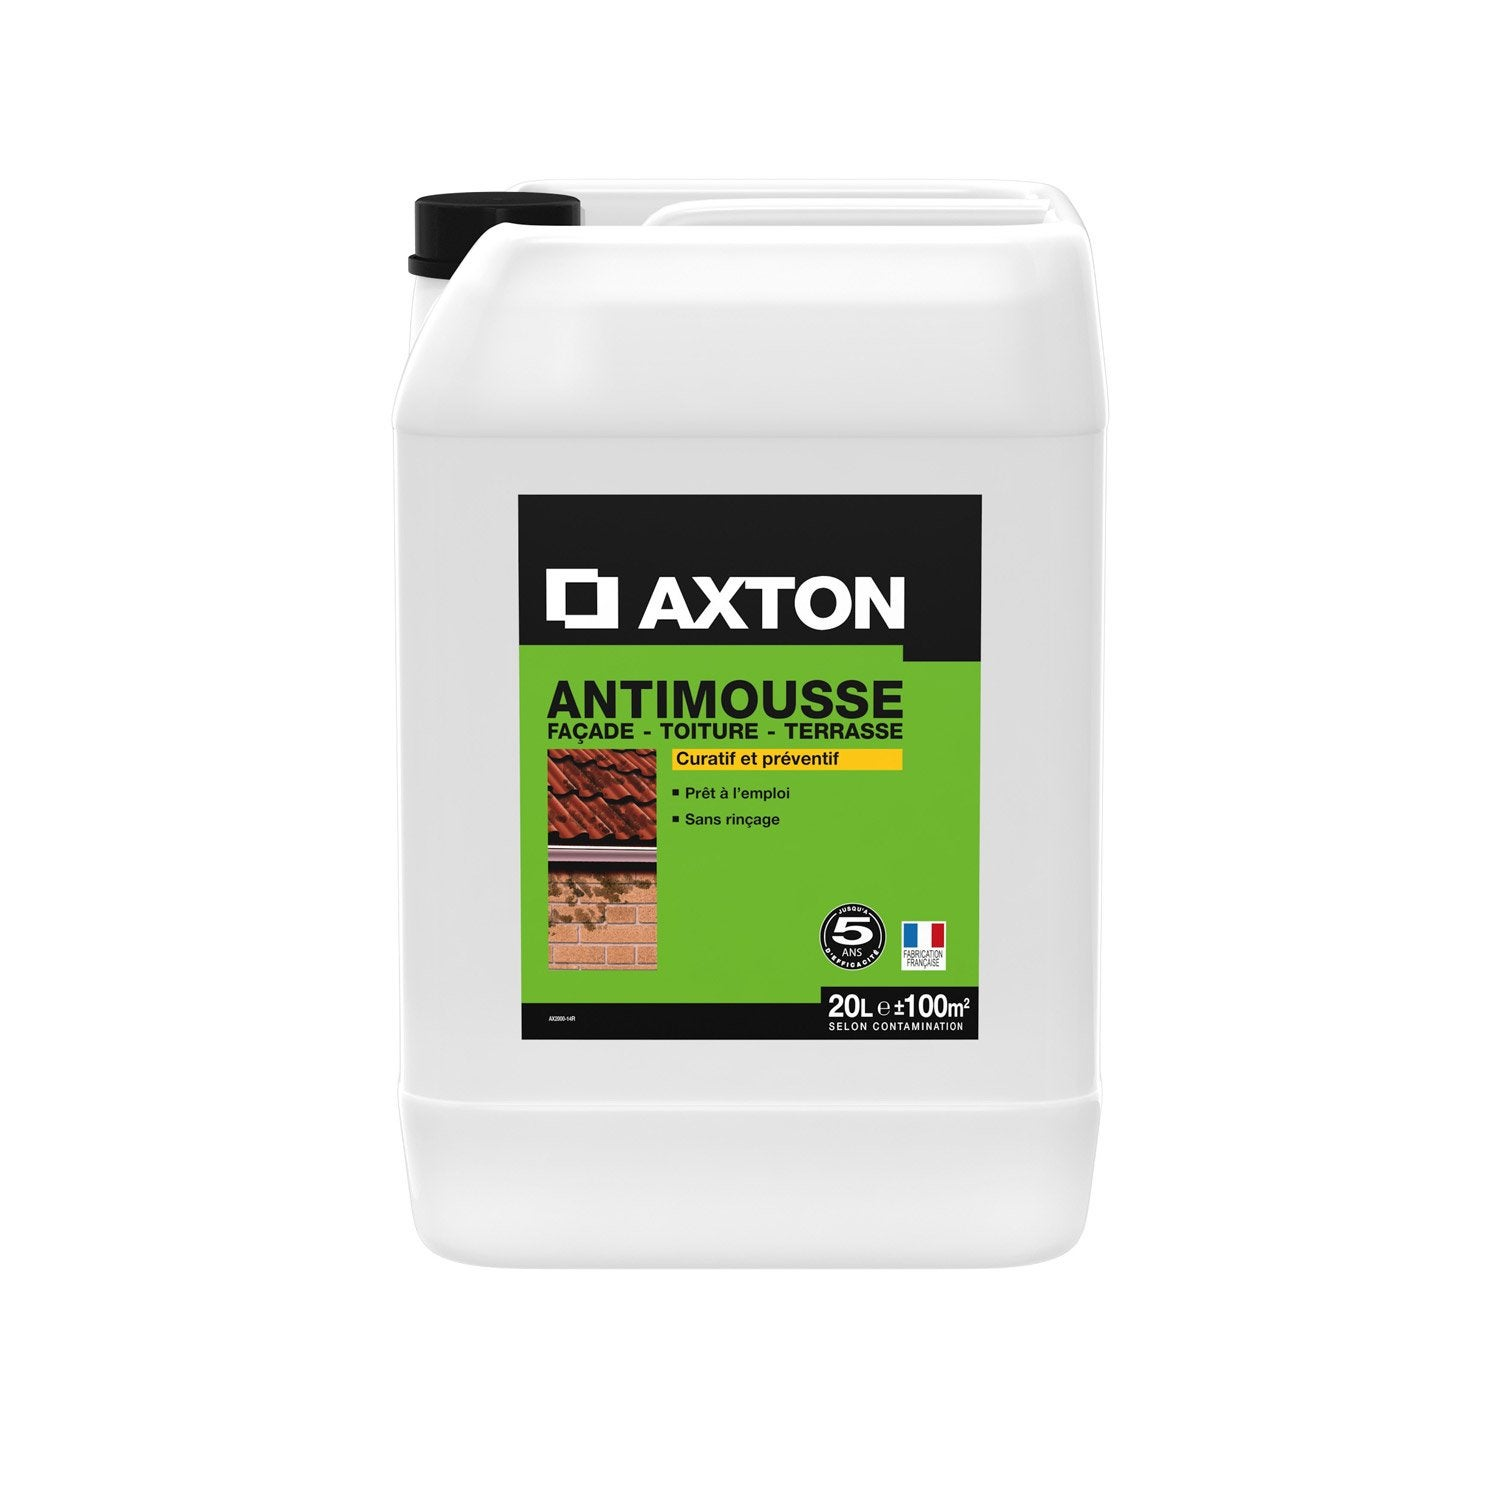 Antimousse fa ade axton 20 l leroy merlin for Produit anti mousse